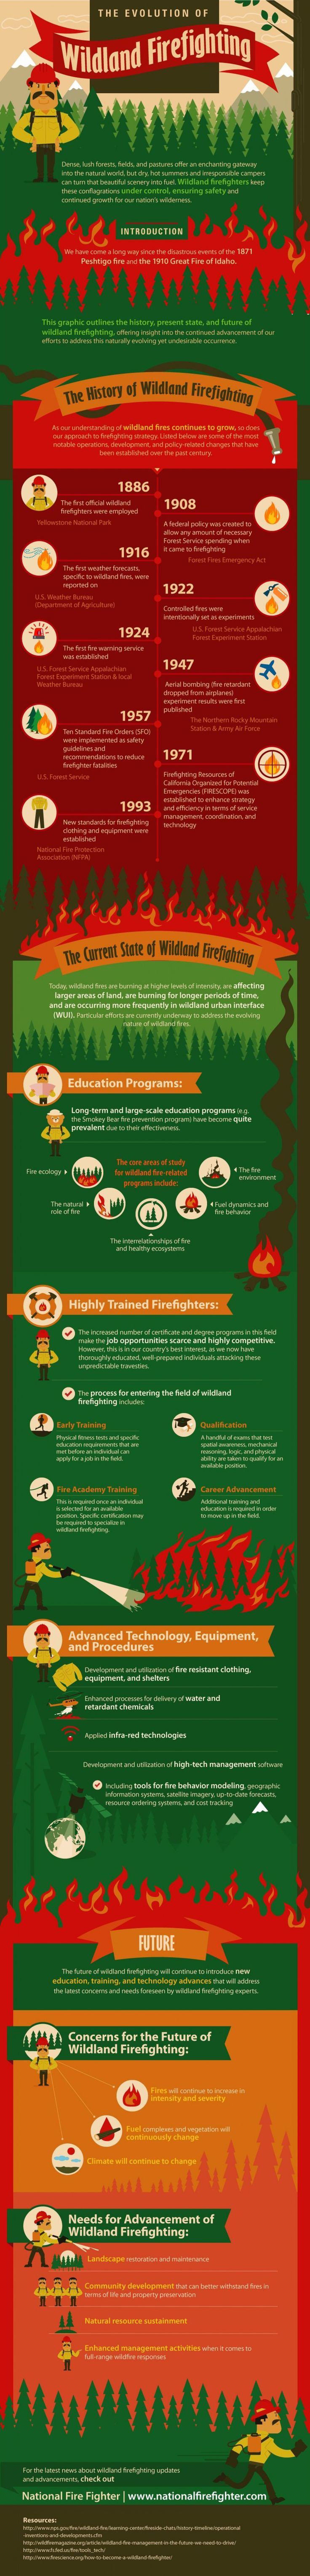 The Evolution of Wildland Firefighting Infographic